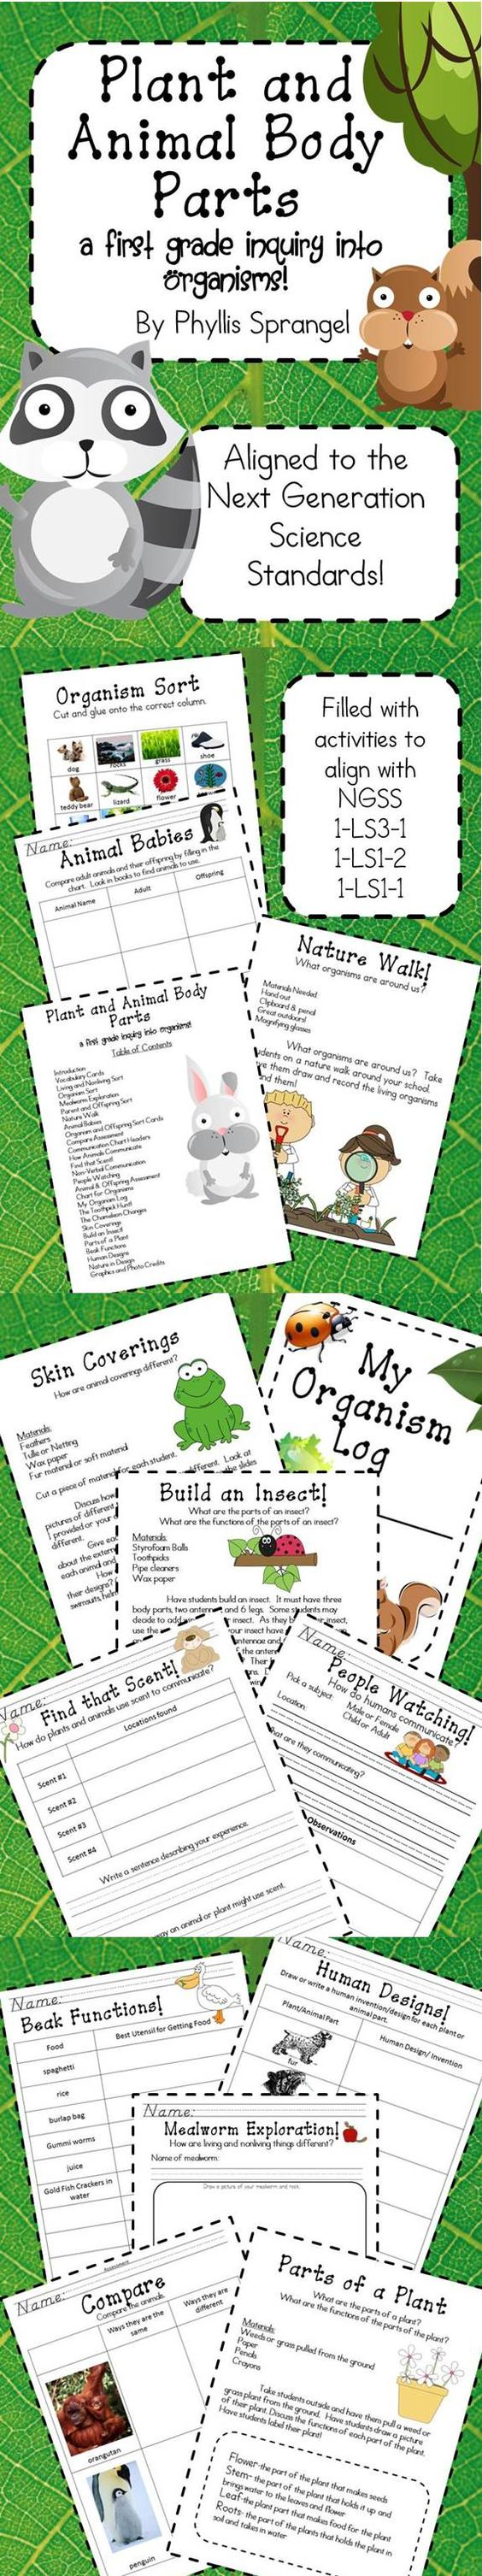 Plant and Animal Body Parts is aligned to the Next Generation Science Standards. It contains activities, explorations, resources and assessments for your class! This is a fantastic resource for first grade teachers to build their curriculum using the Next Generation Science Standards!  $10